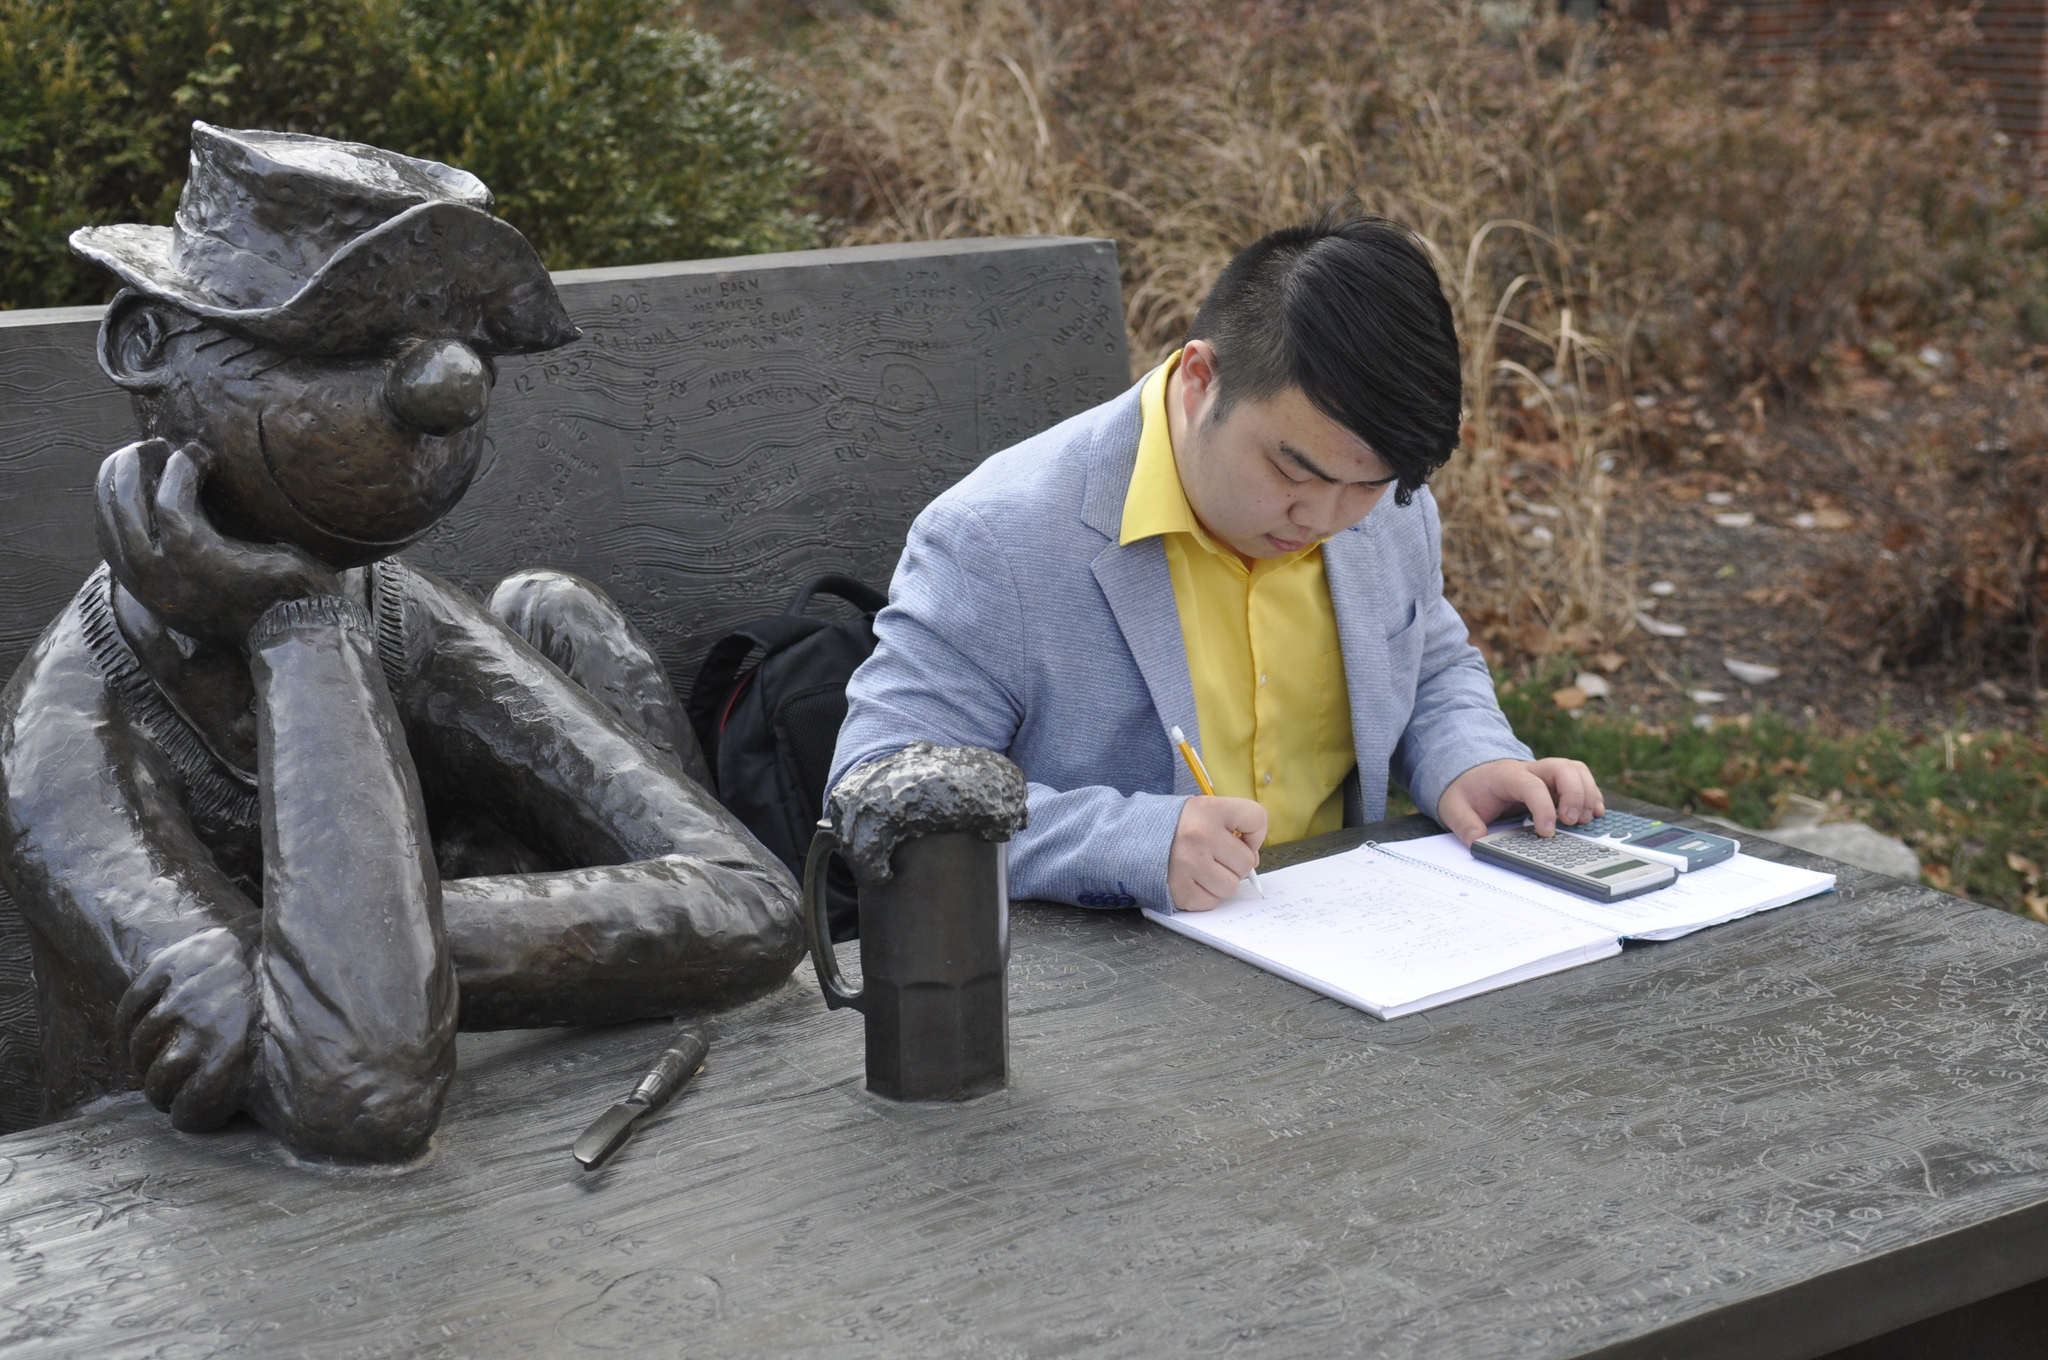 Xu works on math homework sitting at the Beetle Bailey statue